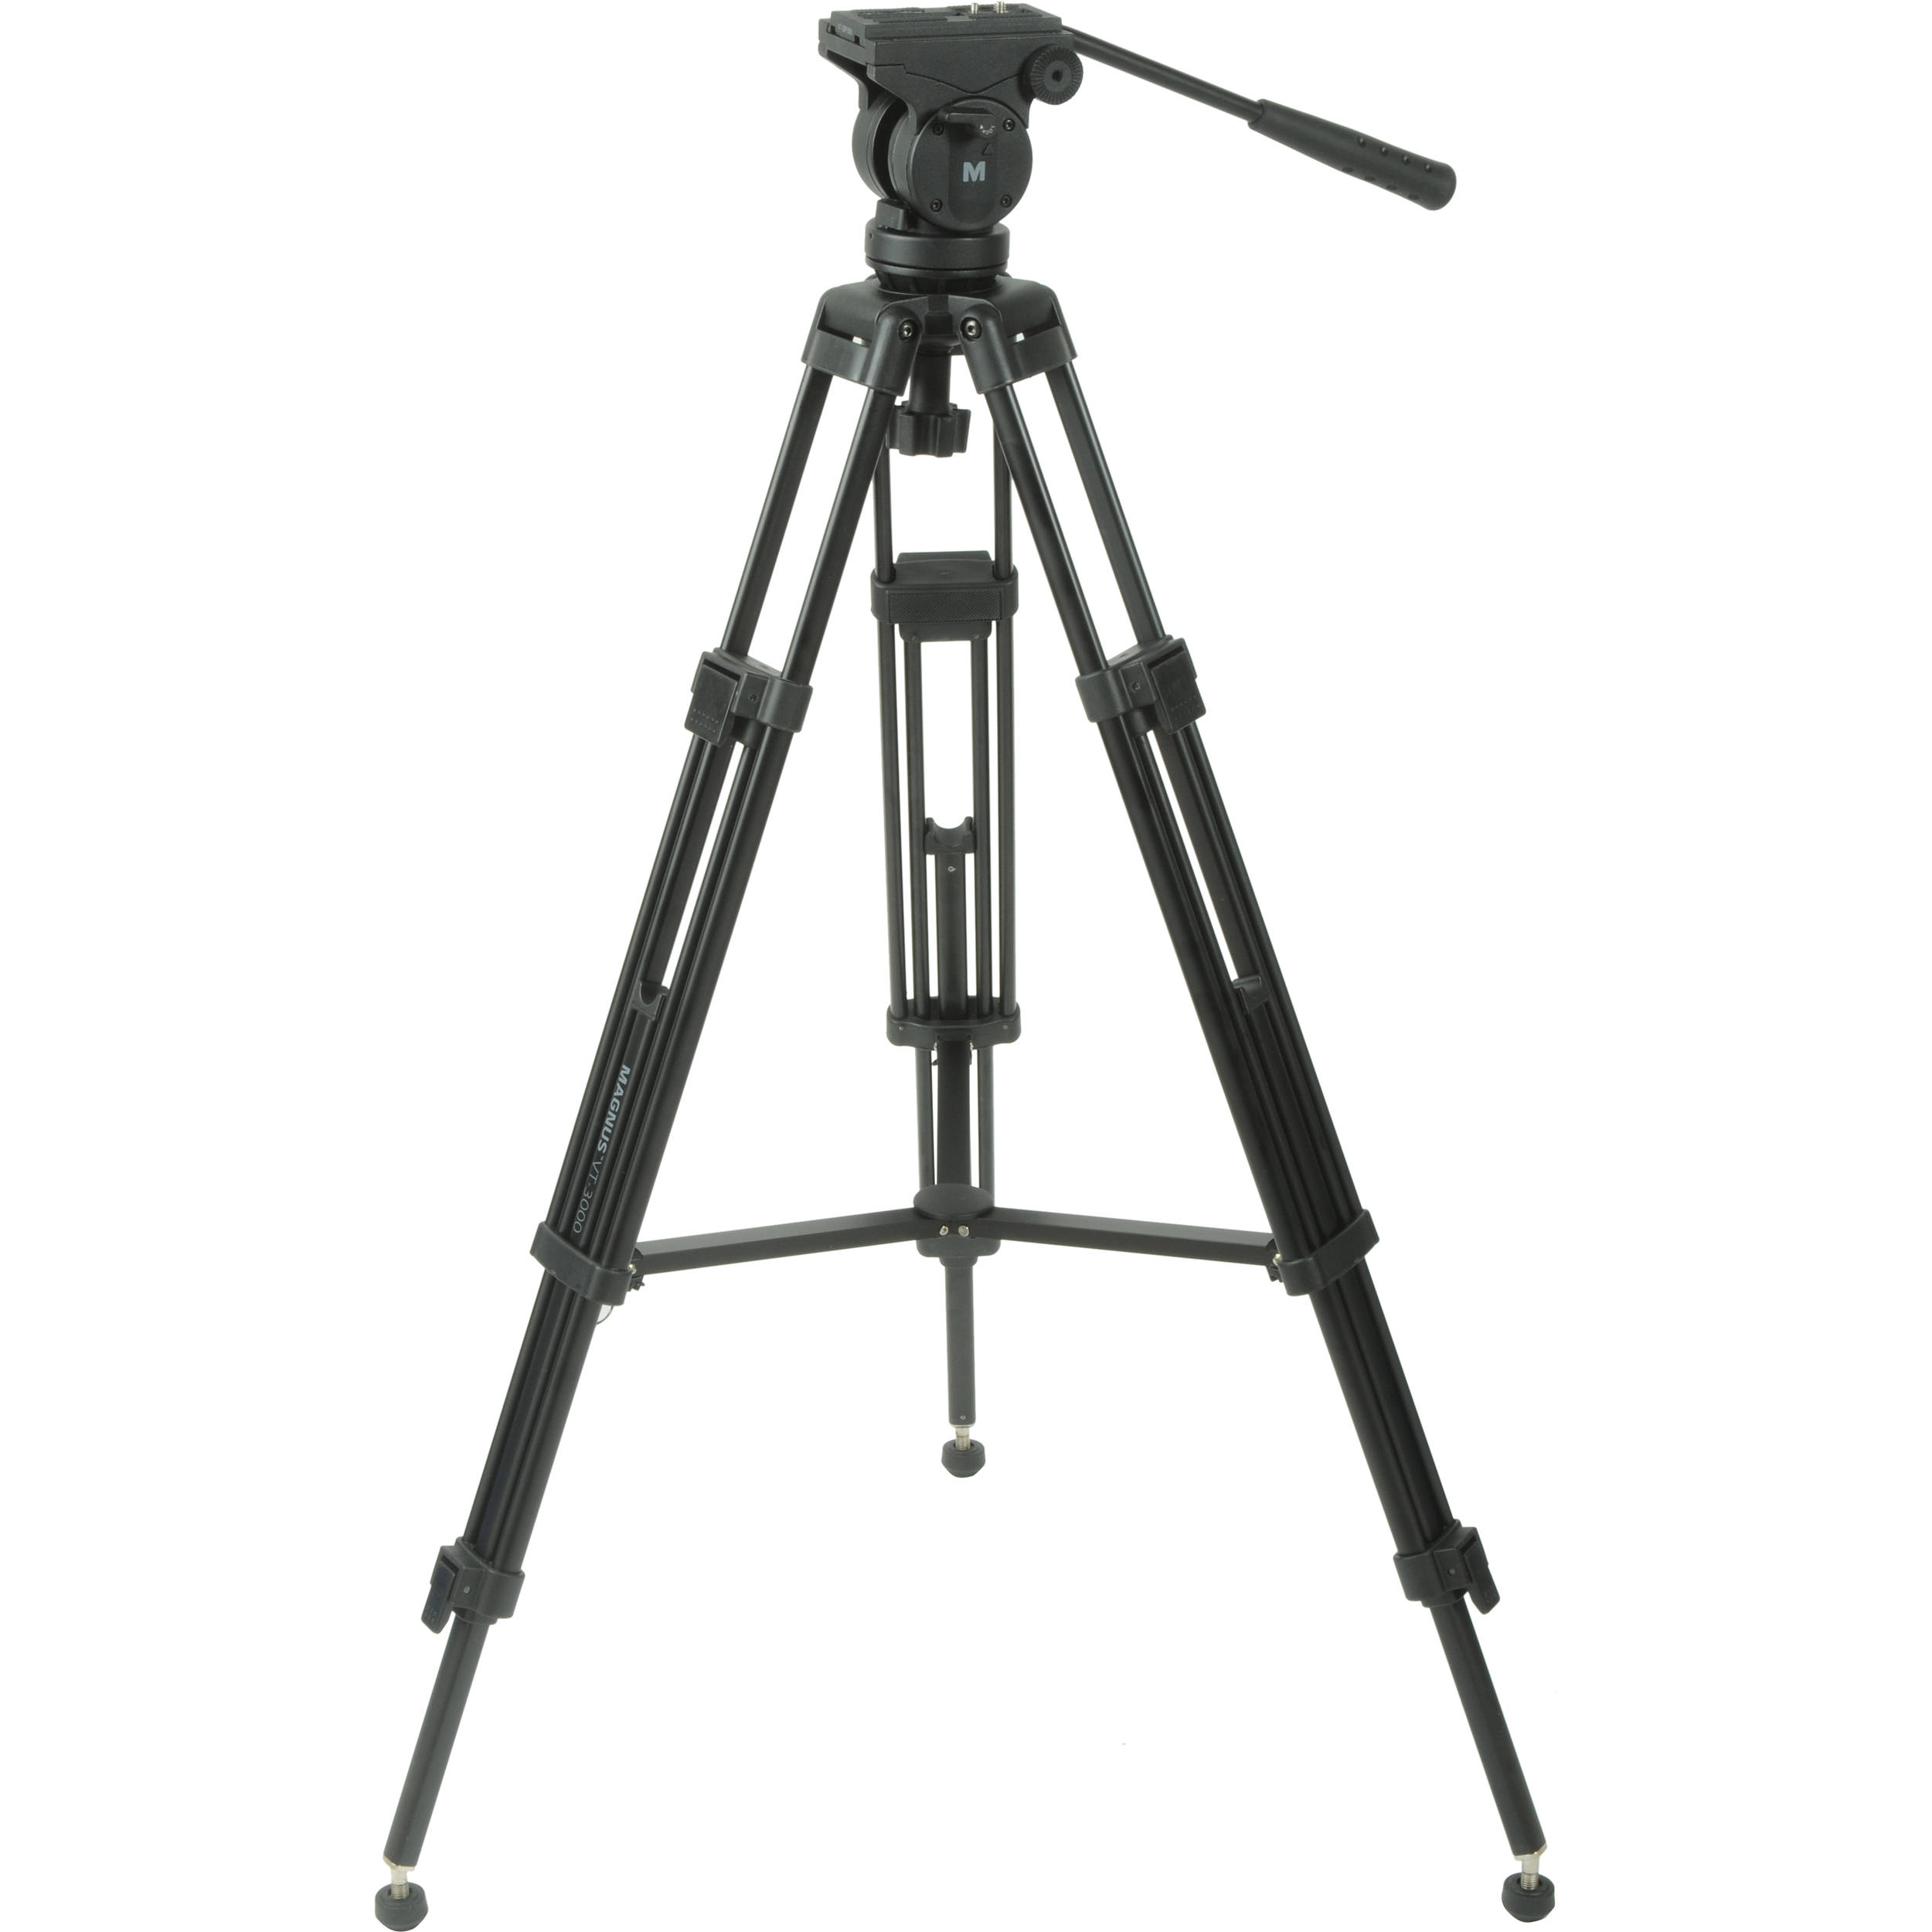 Magnus VT-3000 Tripod System with Fluid Head VT-3000 B&H Photo